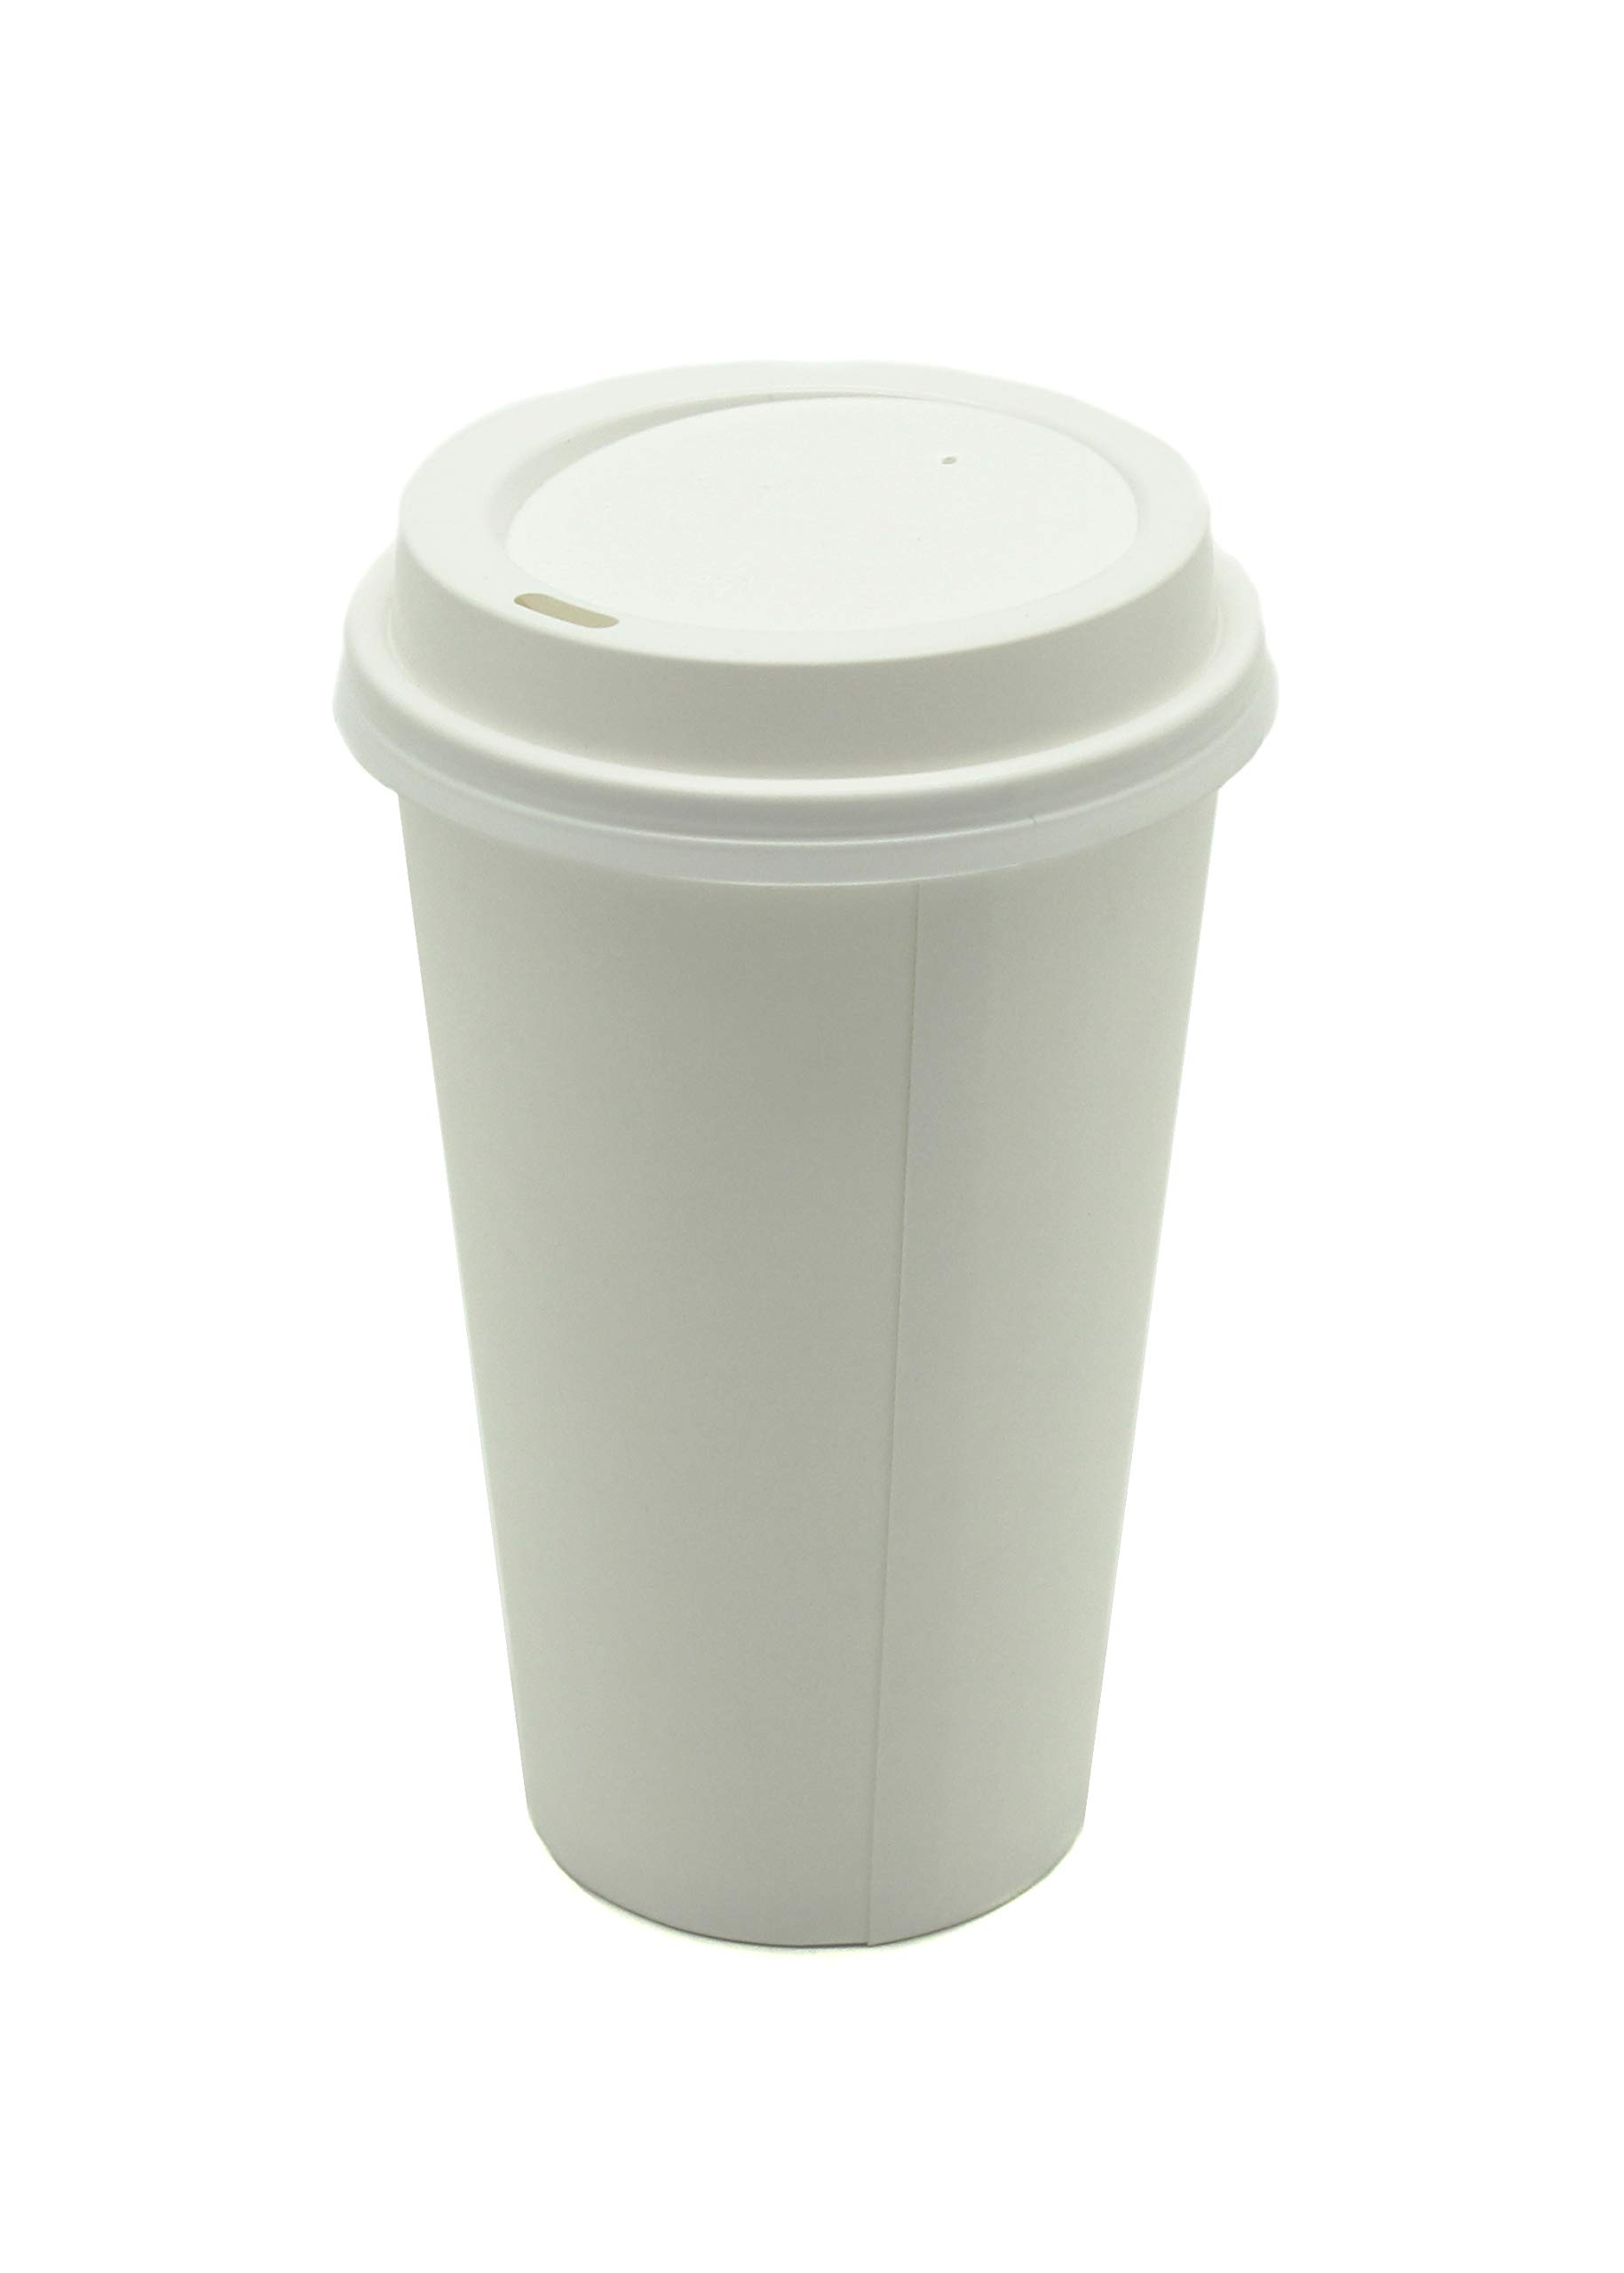 [1000 COUNT] White Paper Hot Cups with White Lids- premium white paper Coffee Office Cocoa Hot Chocolate Latte Cappuccino Hot (1000, 16oz Cups + Lids)